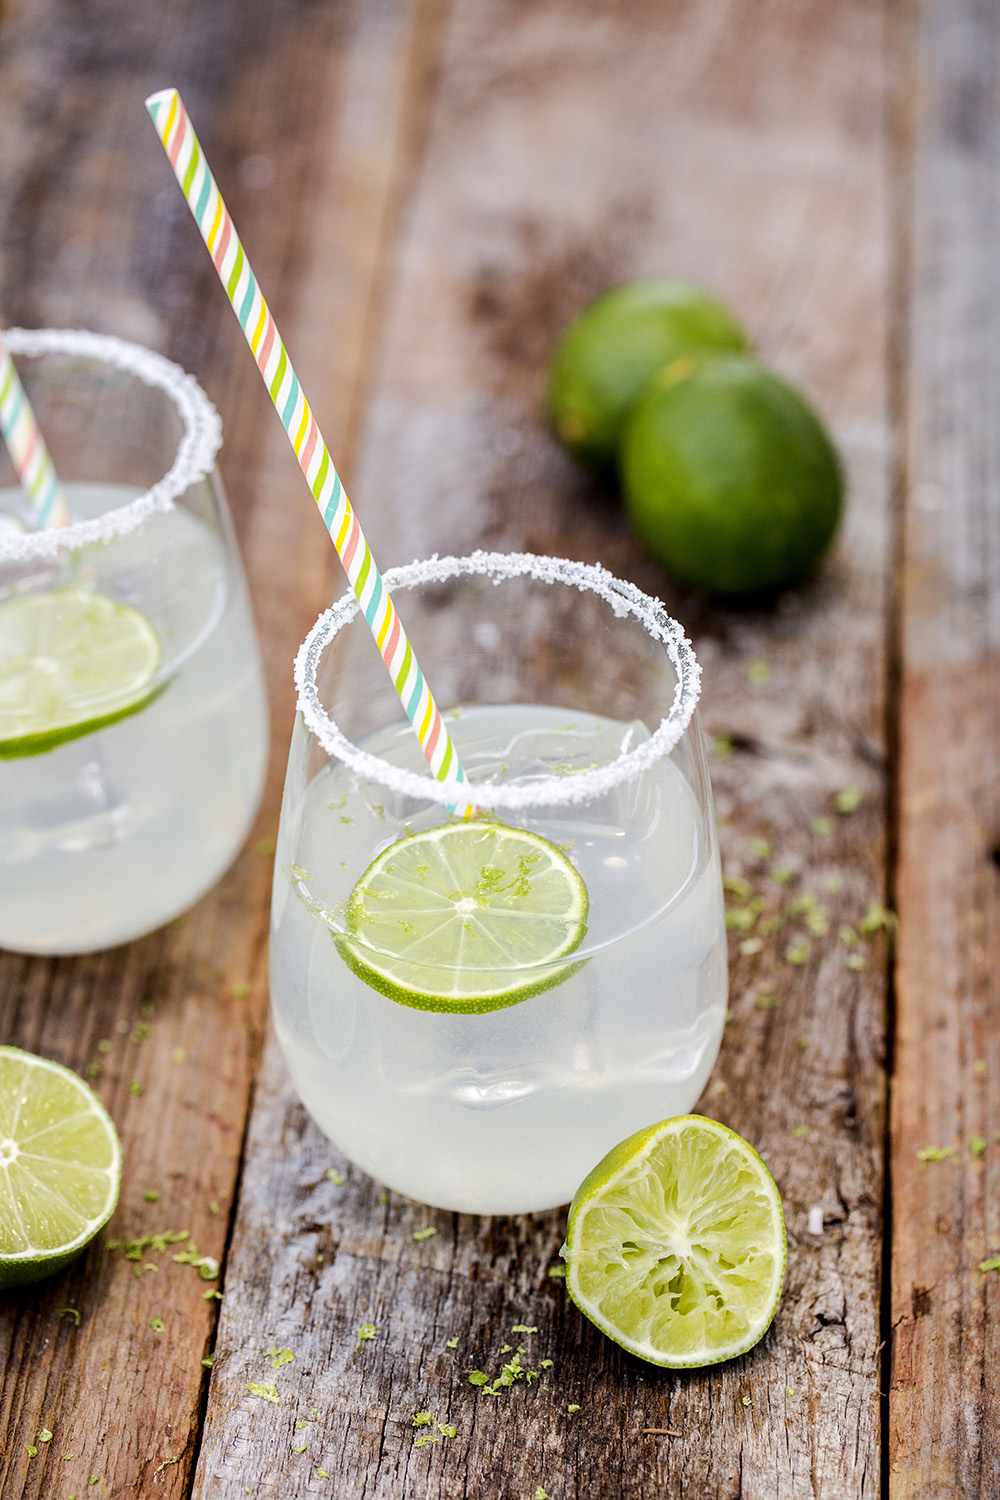 Limeades are a fun alternative to lemonade. And both can be made with sugar substitutes for those who are calorie conscious.